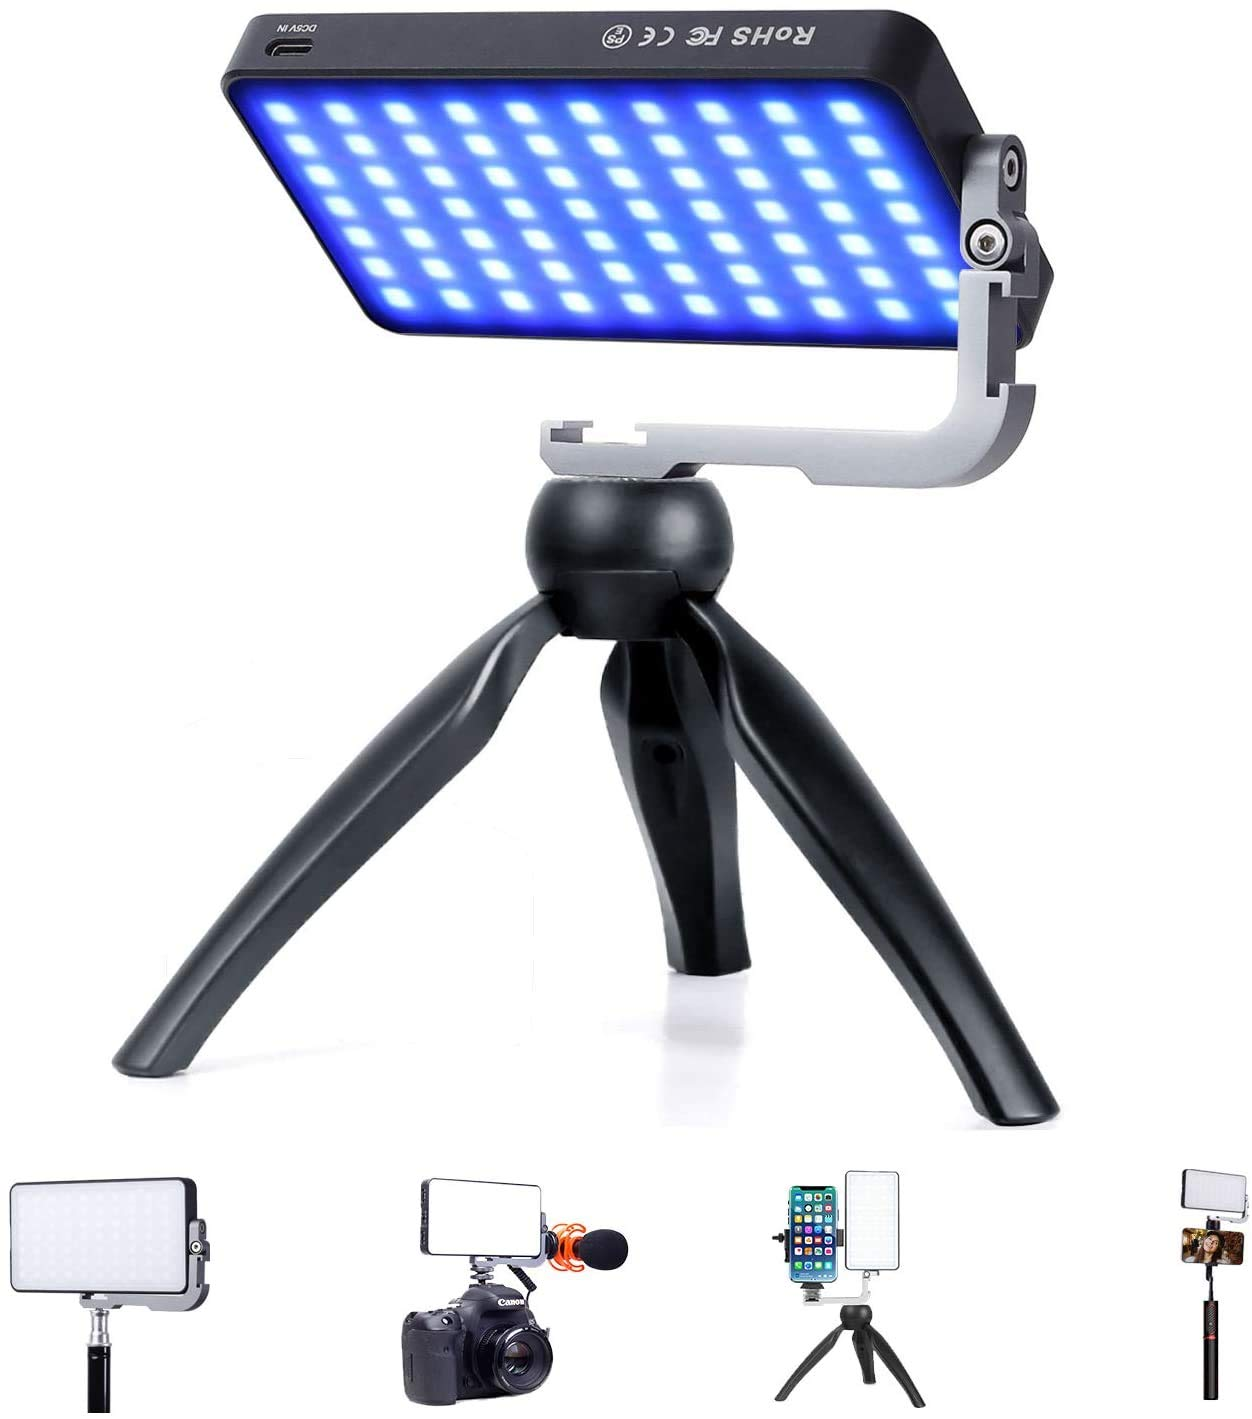 IVISII G2 Pocket RGB Camera Light,32Wh Built-in 4300mAh Rechargeable Battery 360°Full Color Gamut 9 Light Effects,2600…